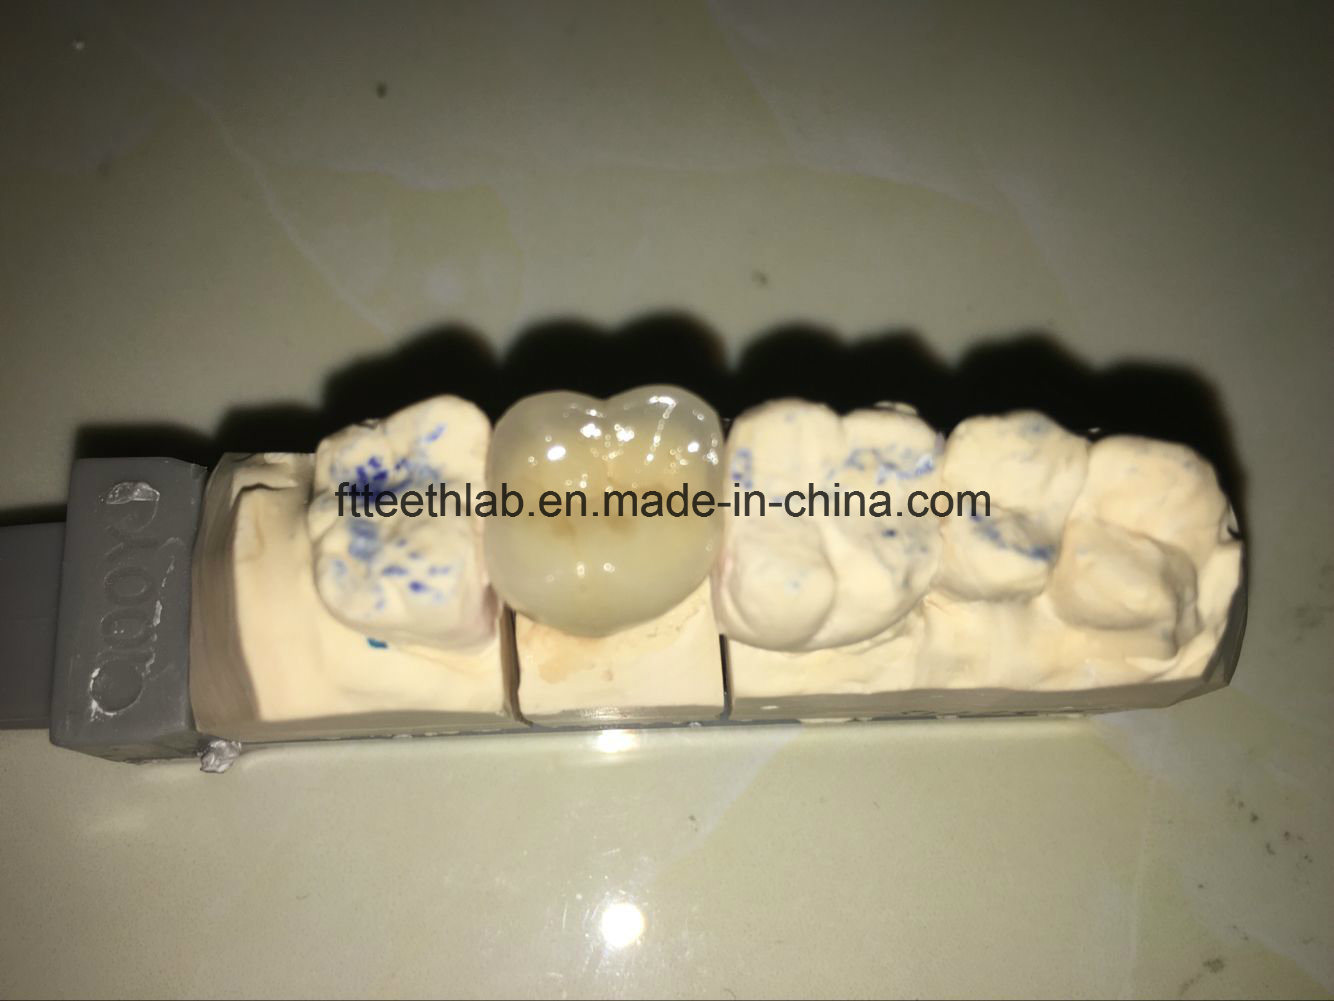 Permanent Dental Crowns Made in Chinese Dental Lab